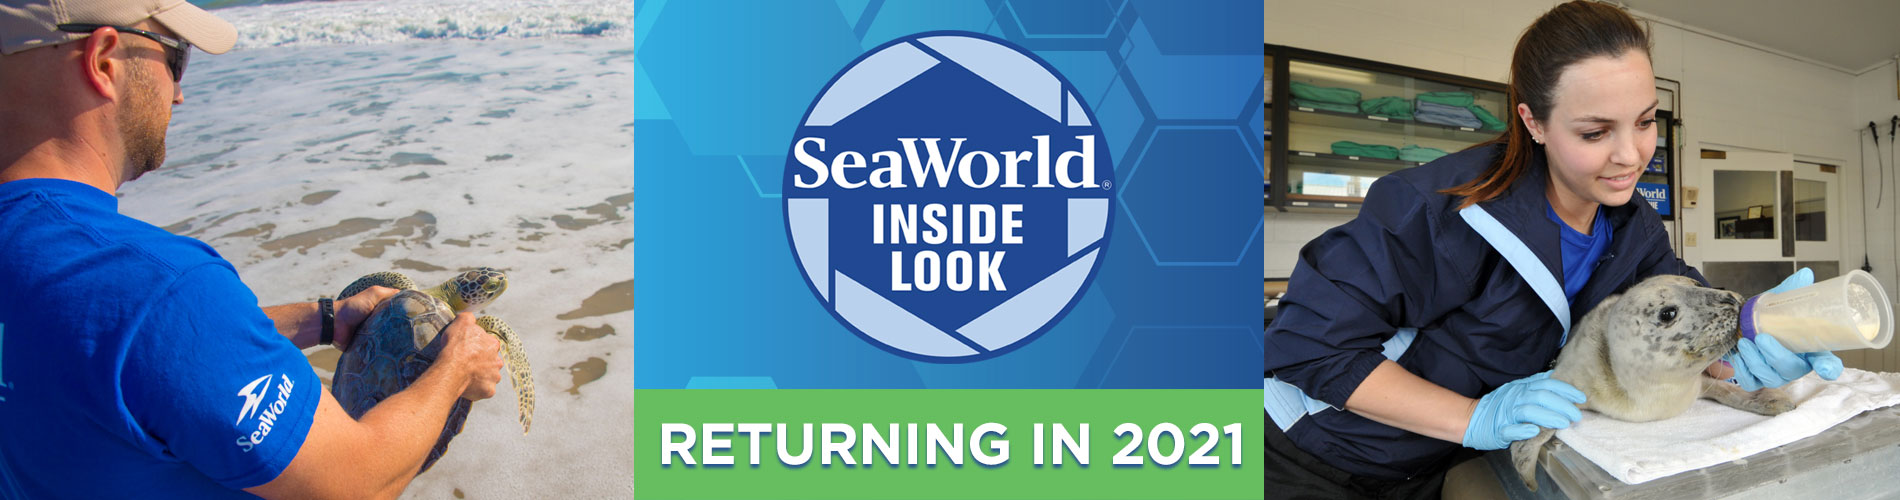 Inside Look event at SeaWorld Orlando